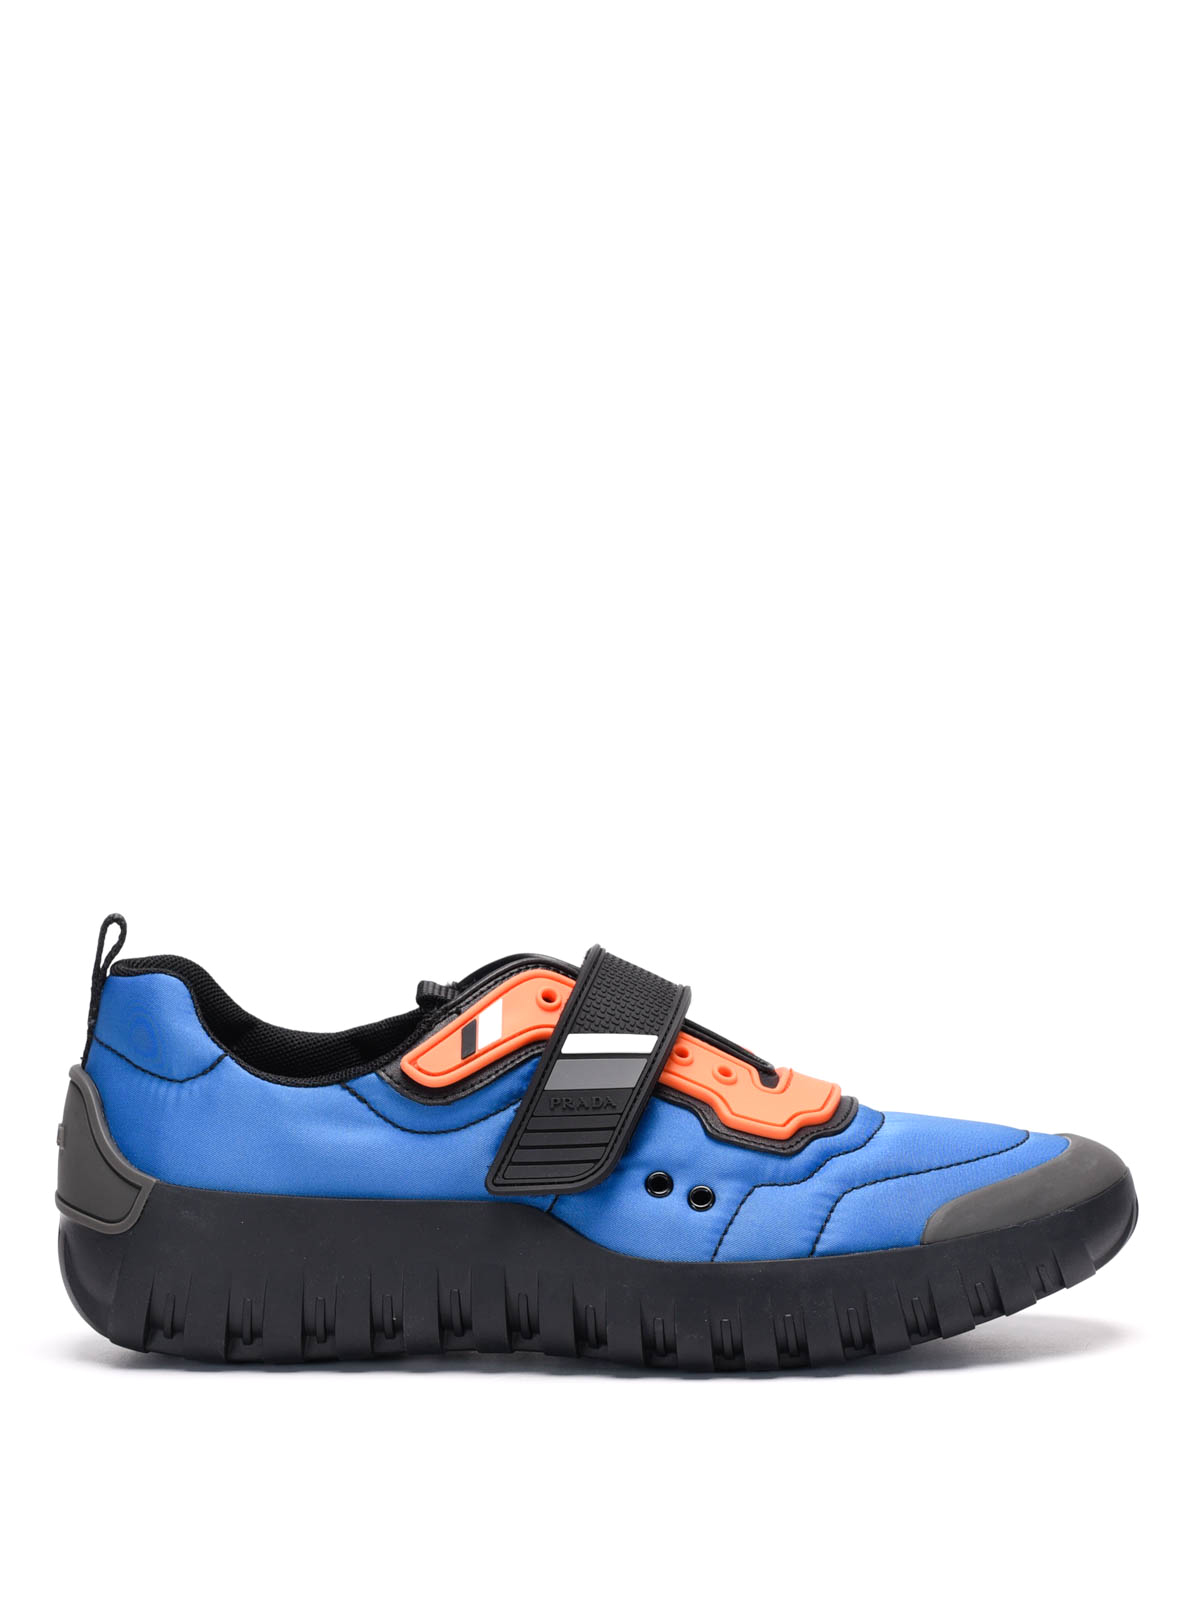 Prada Nylon And Rubber Sneakers In Blue